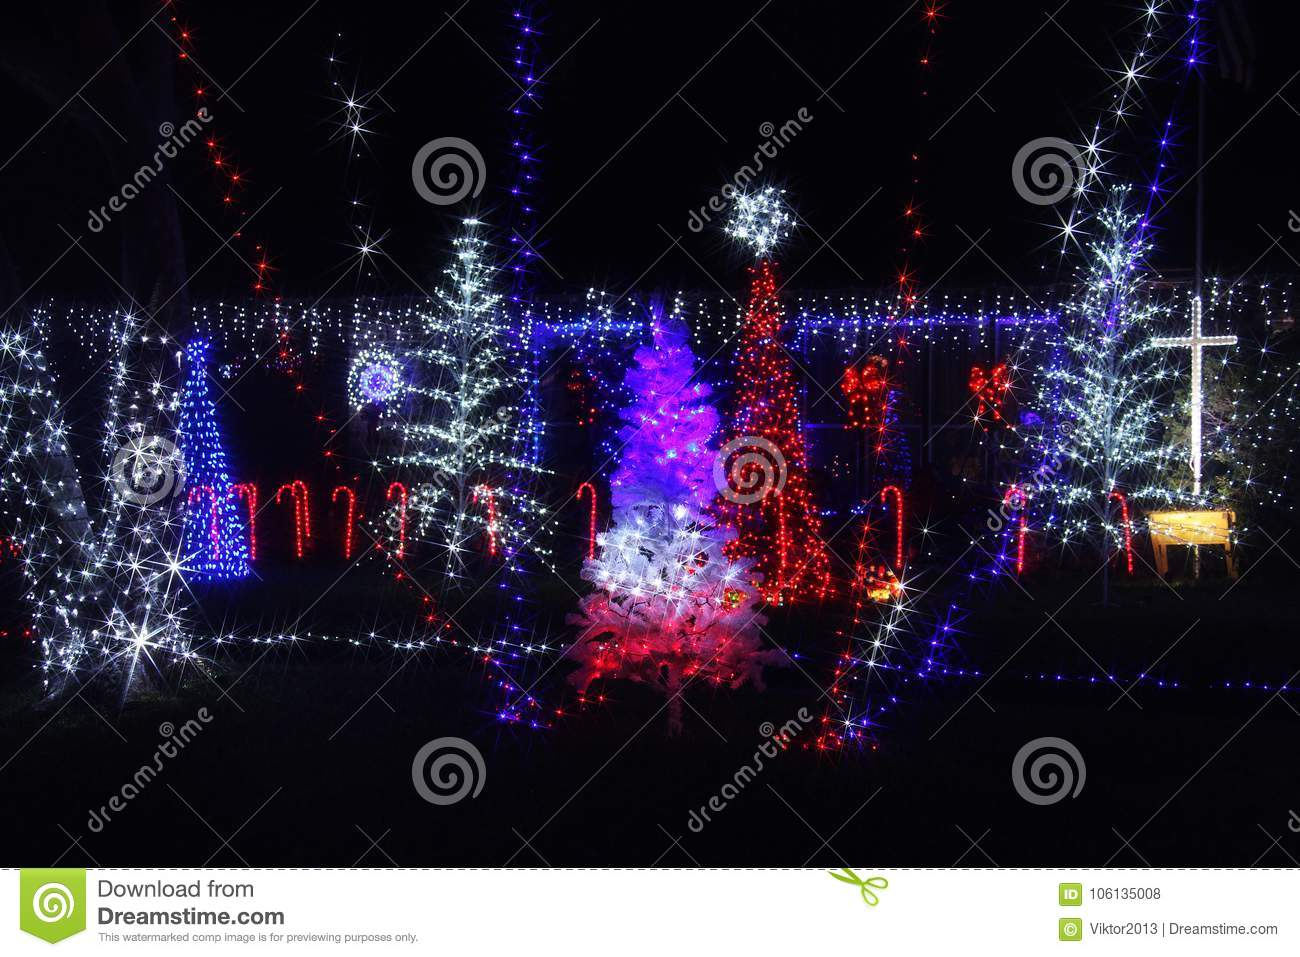 Christmas Celebration In America.Christmas Illuminations In America Stock Photo Image Of